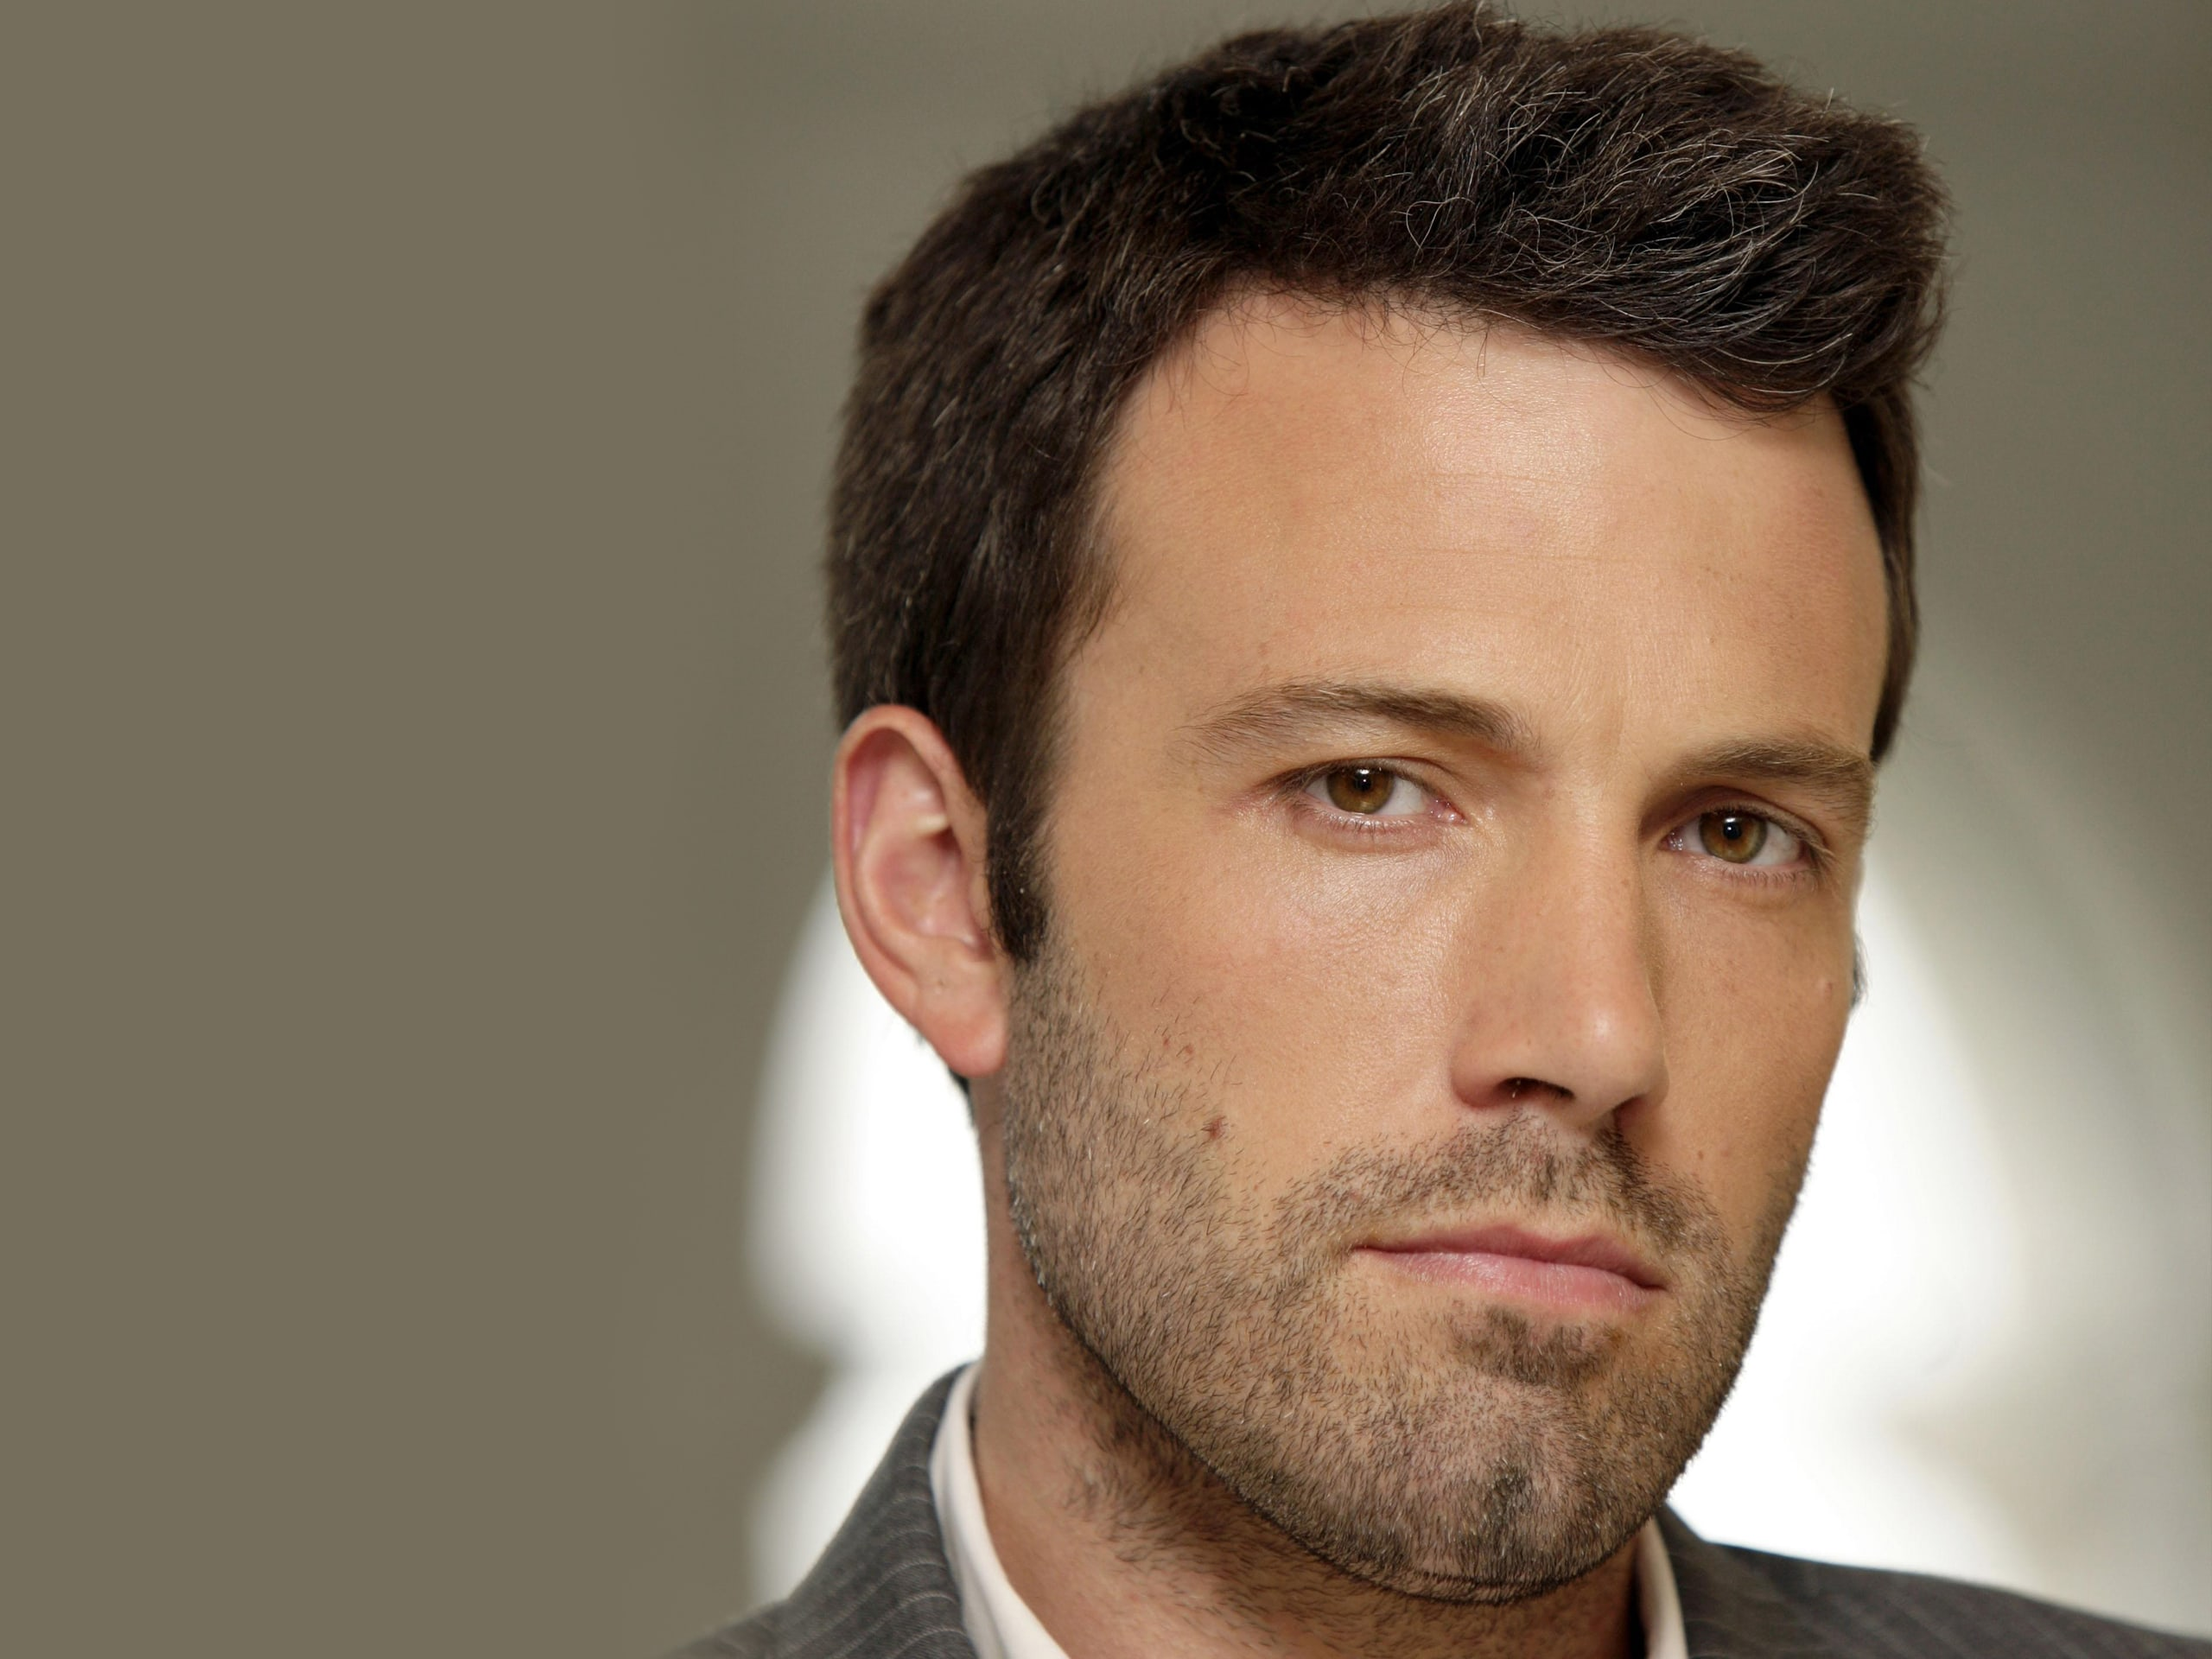 Ben Affleck HQ wallpapers